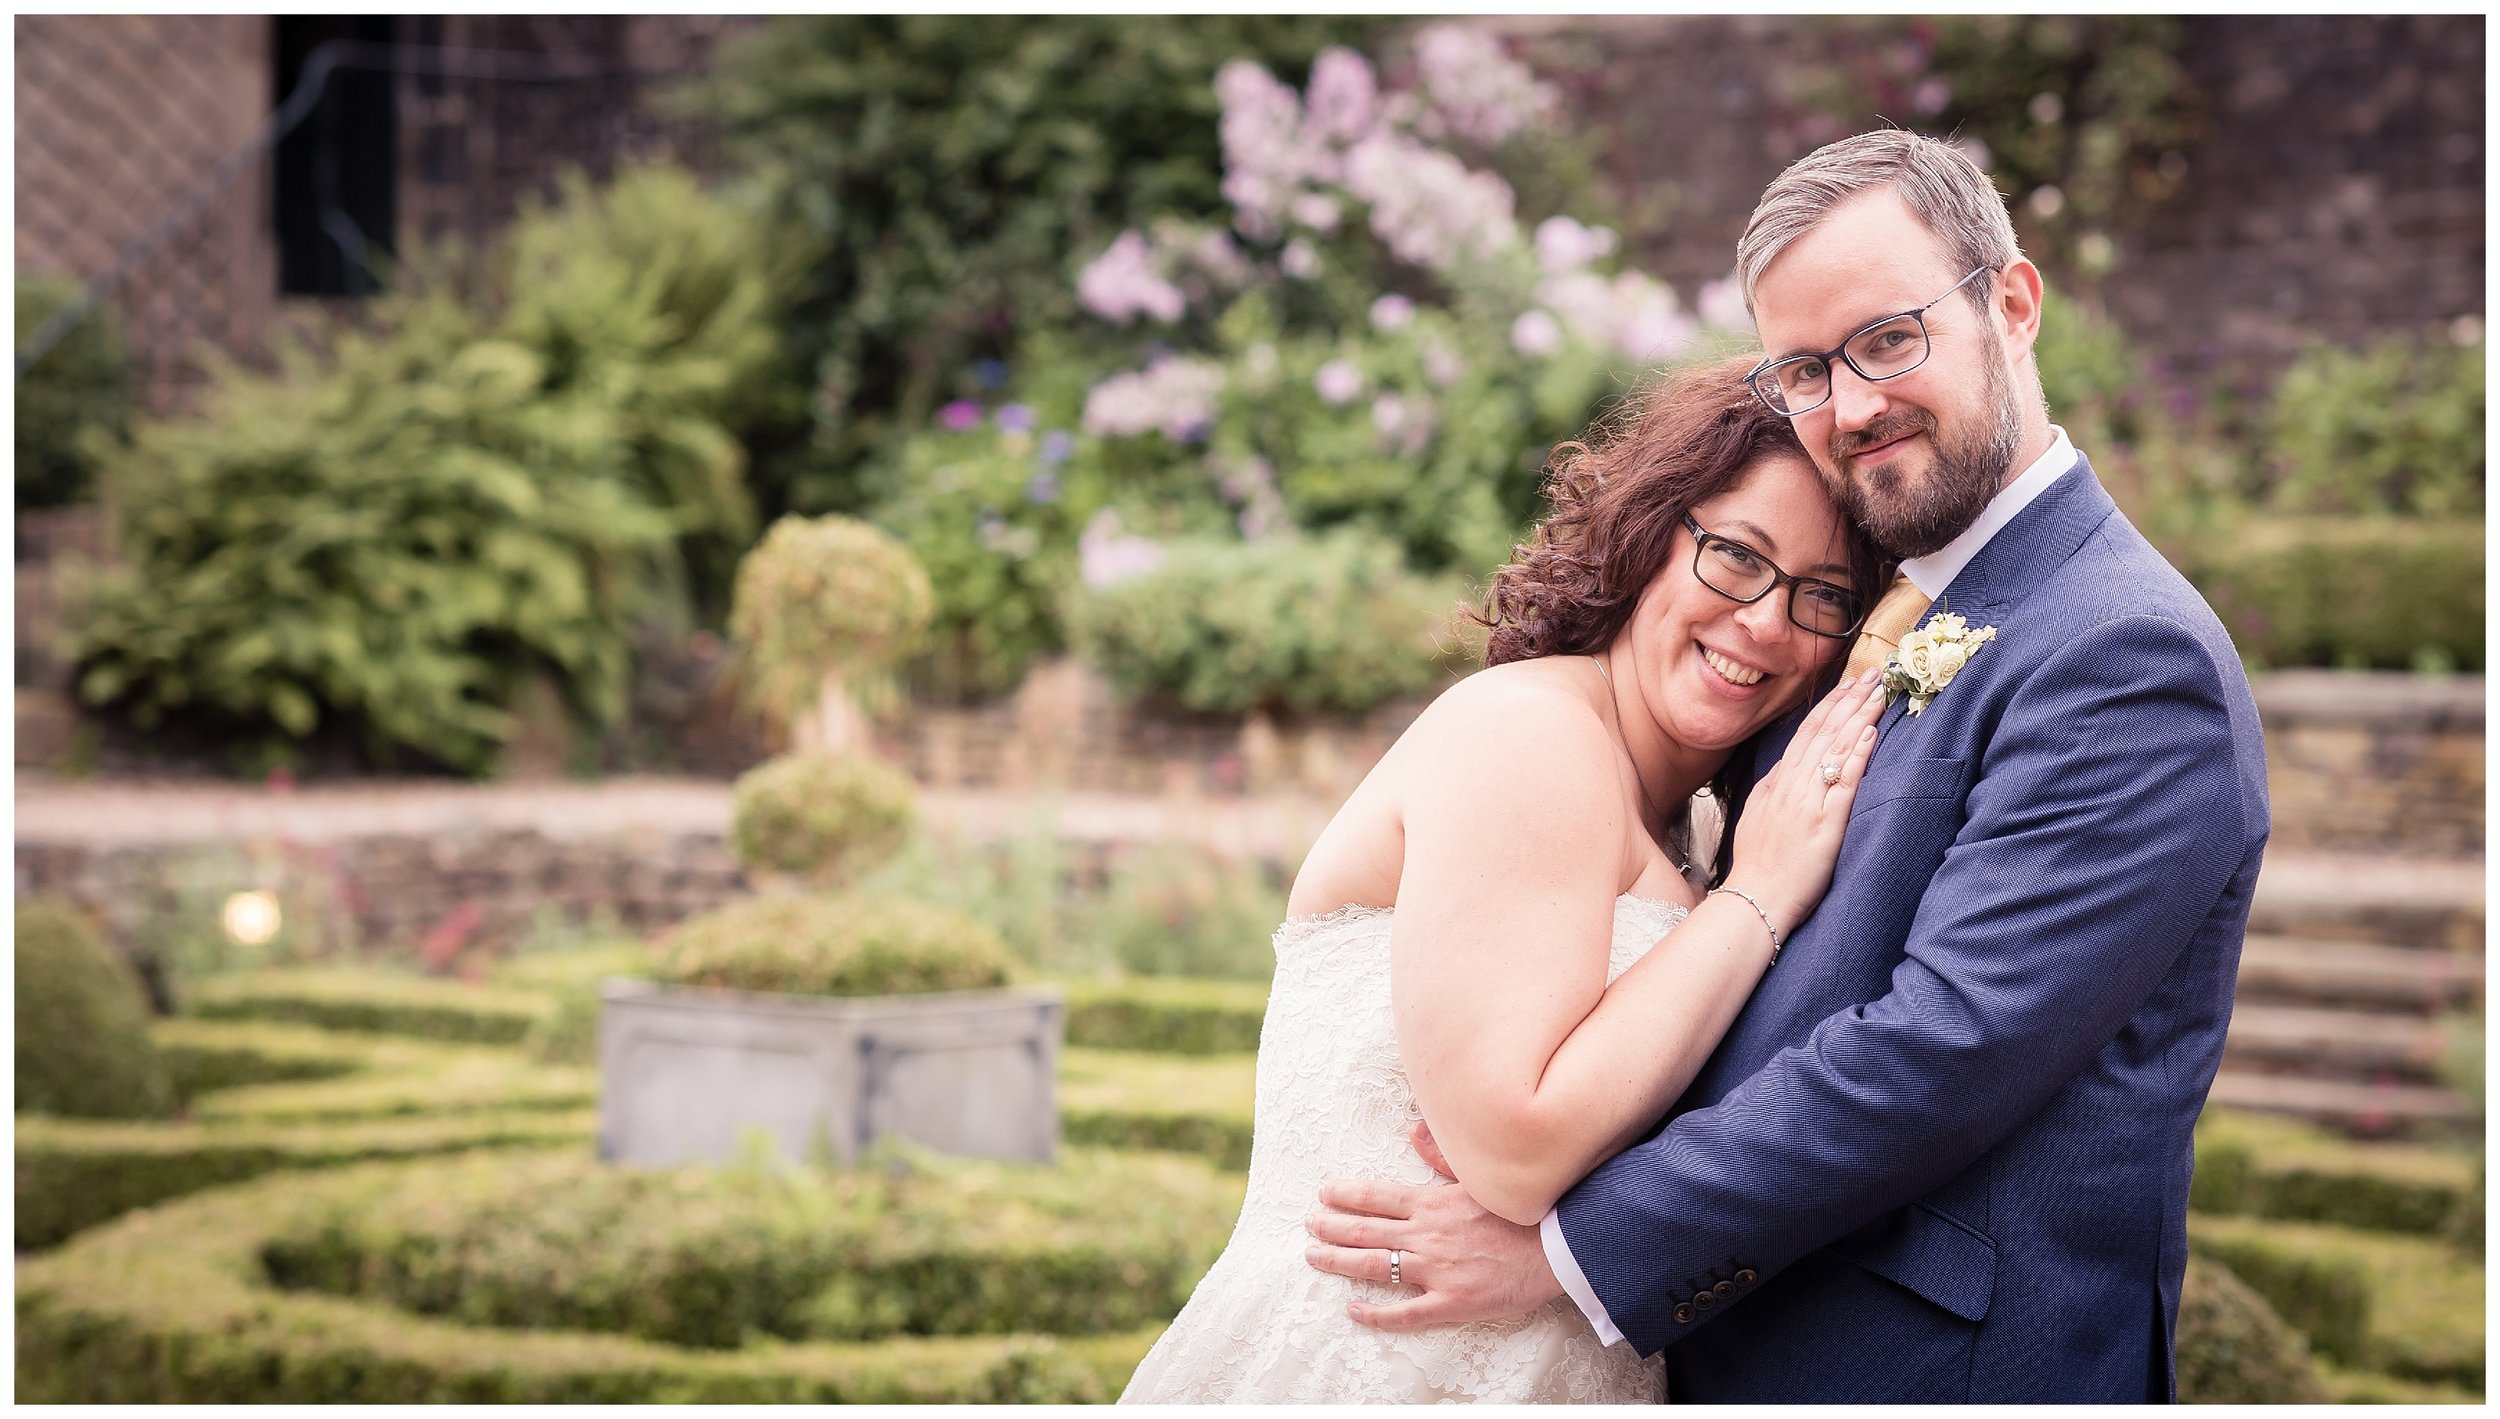 Holdsworth House Wedding - Richard Perry Photography